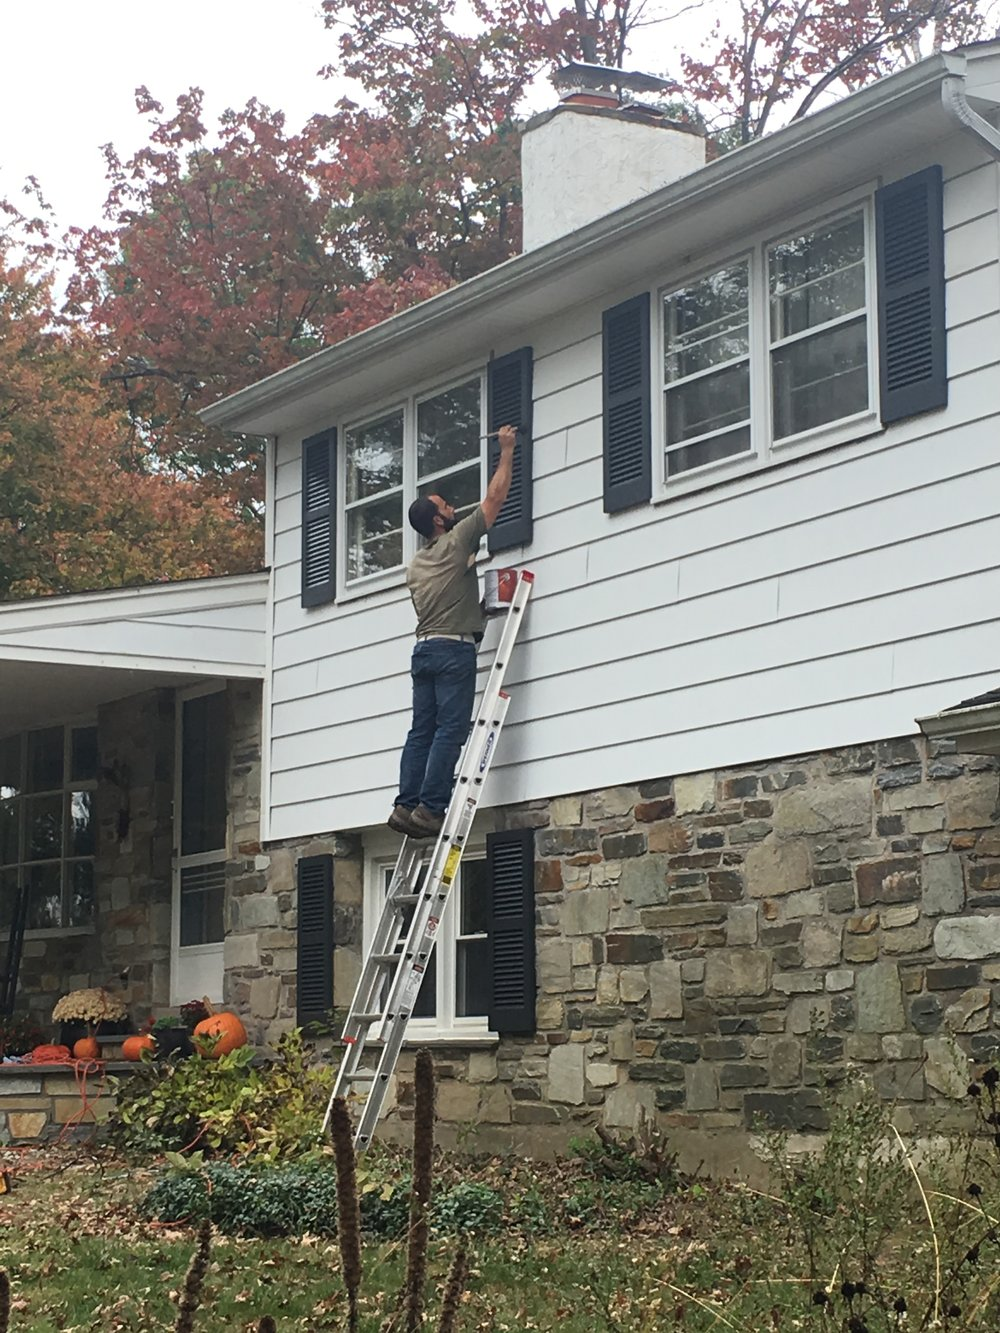 In October 2017, we were back at it! We decided to paint the shutters a darker color; Benjamin Moore Wrought Iron.